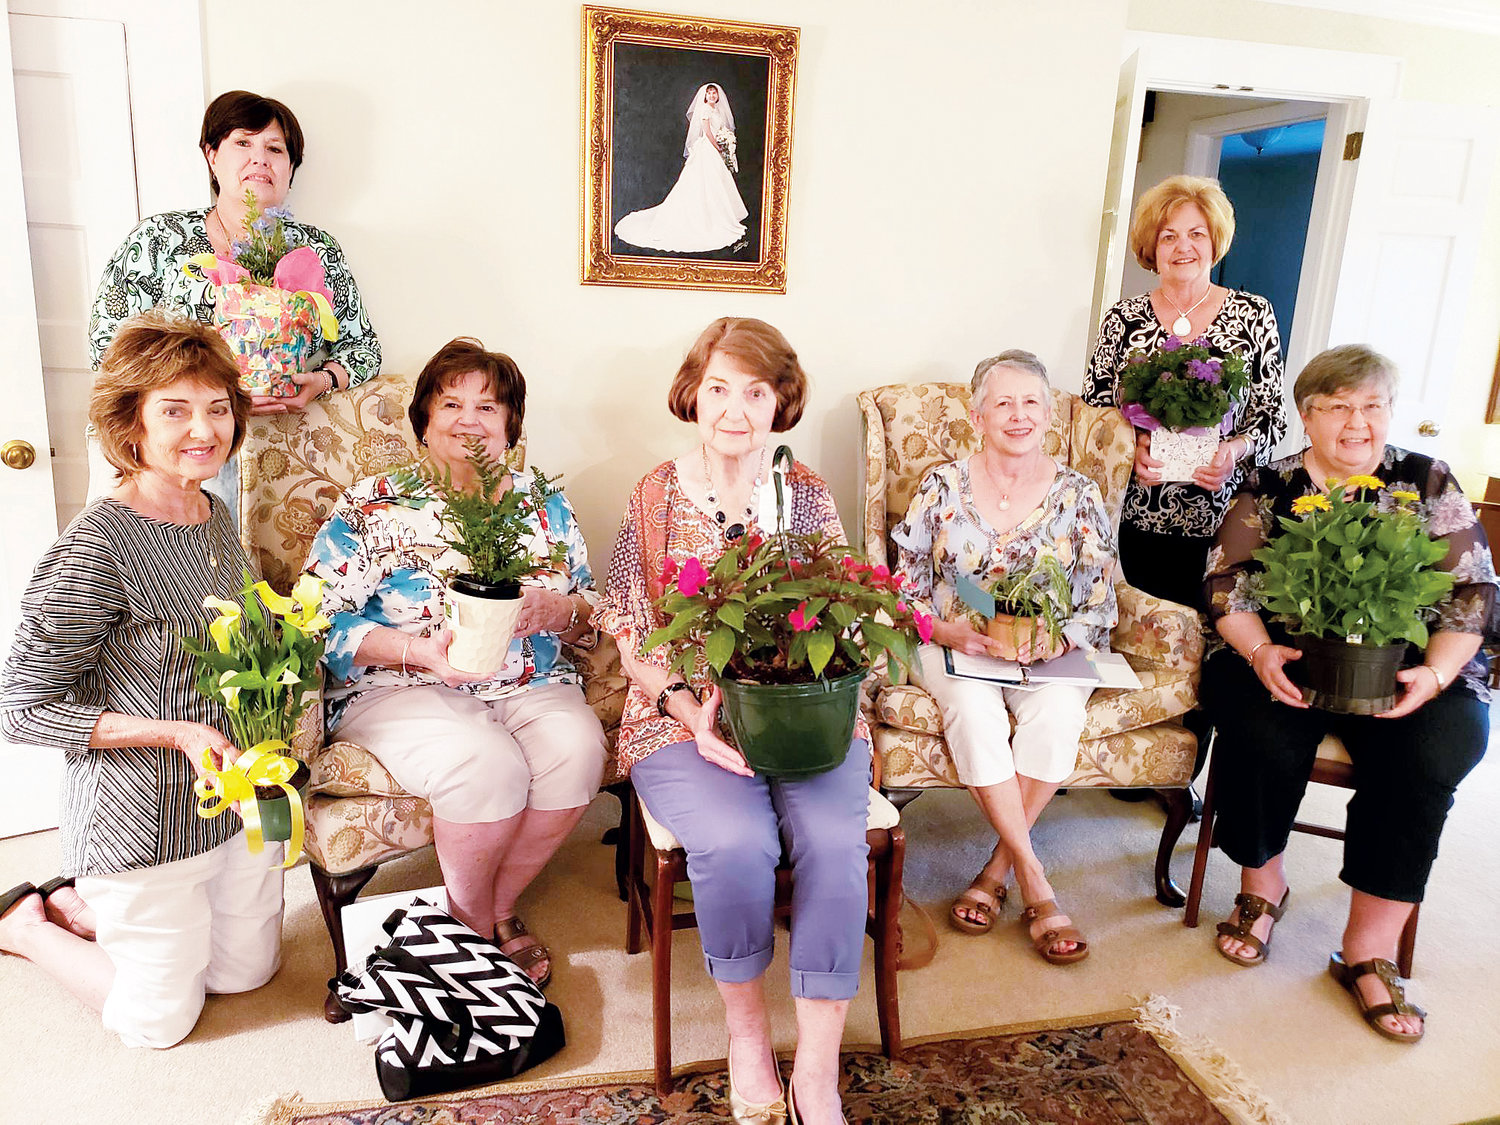 Just-A-Mere Garden Club members assemble with their plants that they received in the night's plant swap. Pictured in front, from left, are Rachel Edwards, Dixie Honeycut, Betty Lee, Beverly Best and Betsy Williams. Standing are Catherine Gilmore and Karene Smith. Not pictured is Rita Wilson.